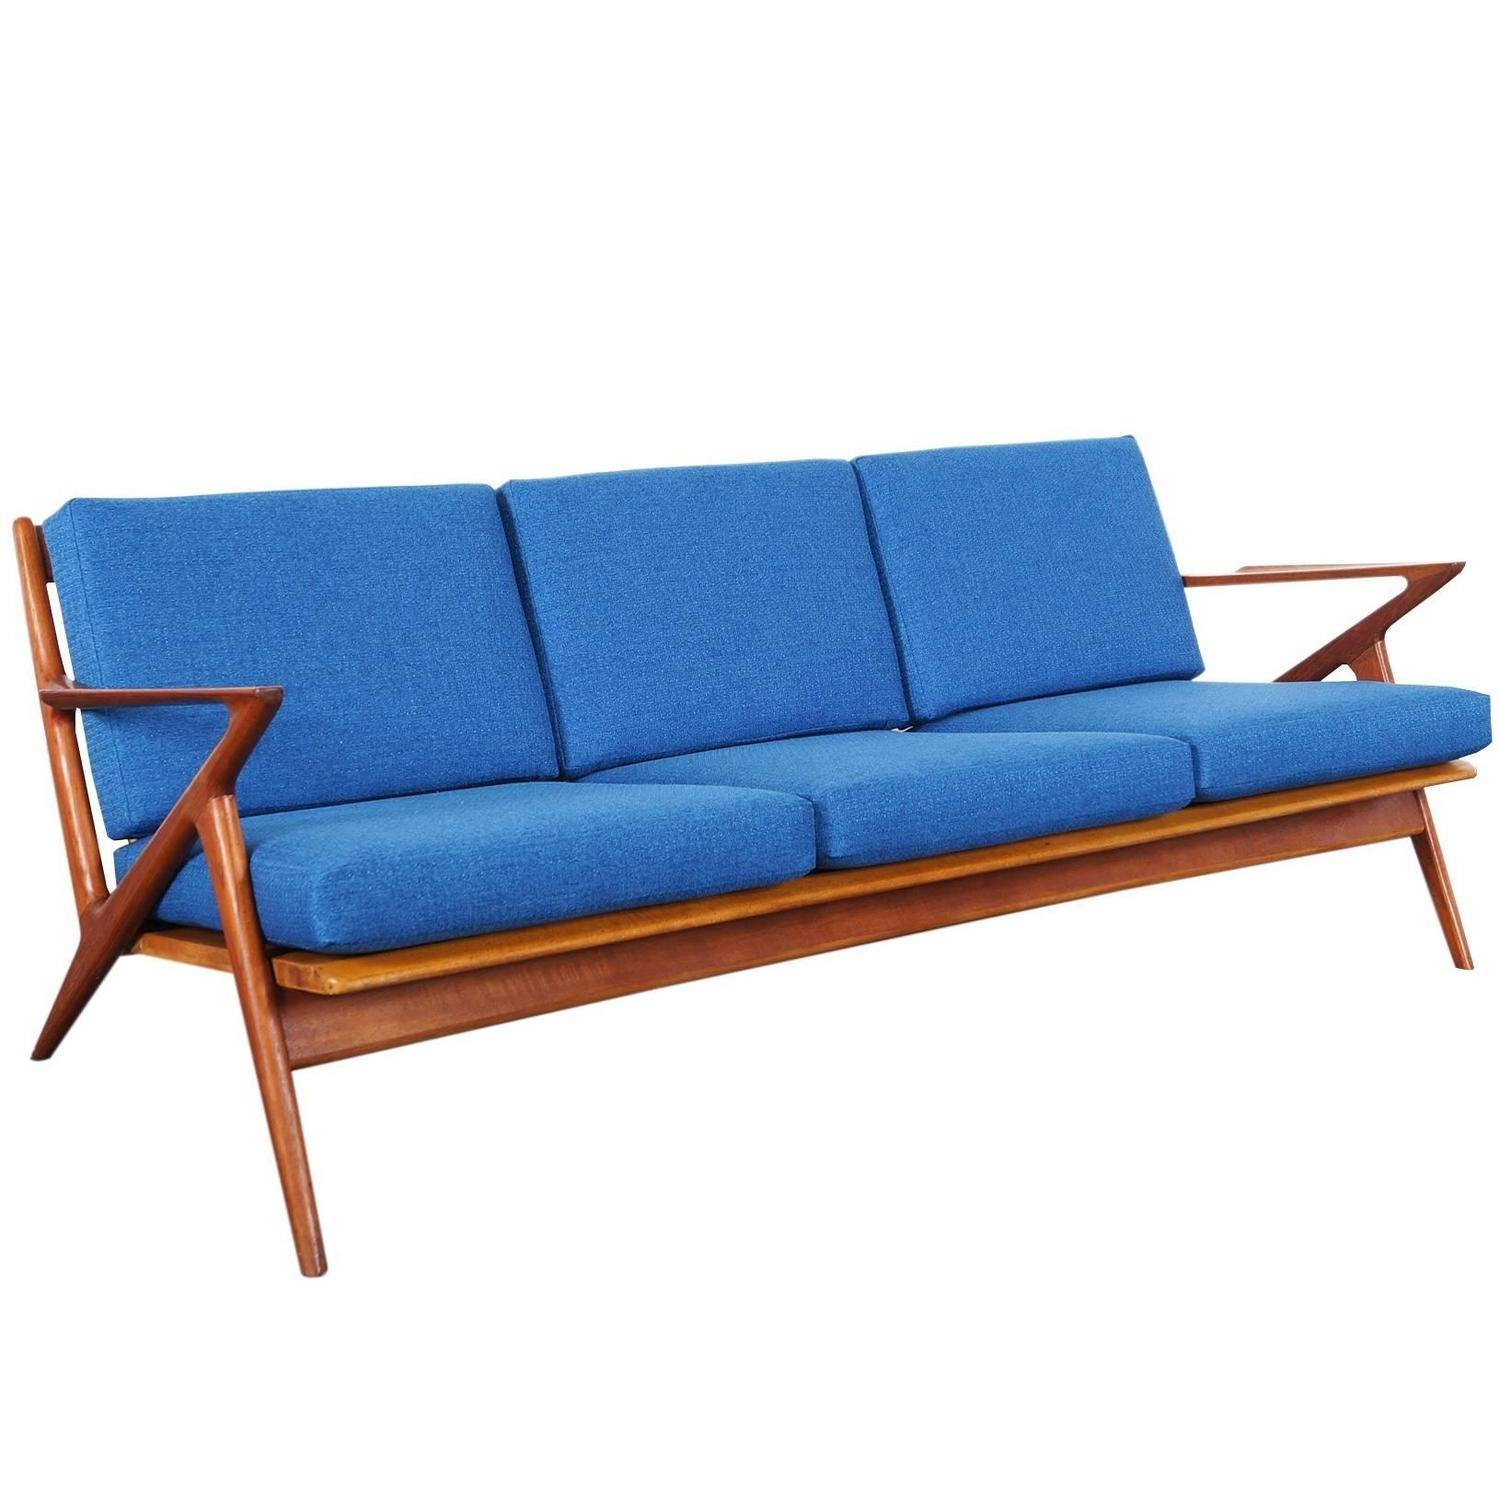 "Danish Modern Teak ""z"" Sofapoul Jensen At 1Stdibs regarding Modern Danish Sofas (Image 3 of 15)"